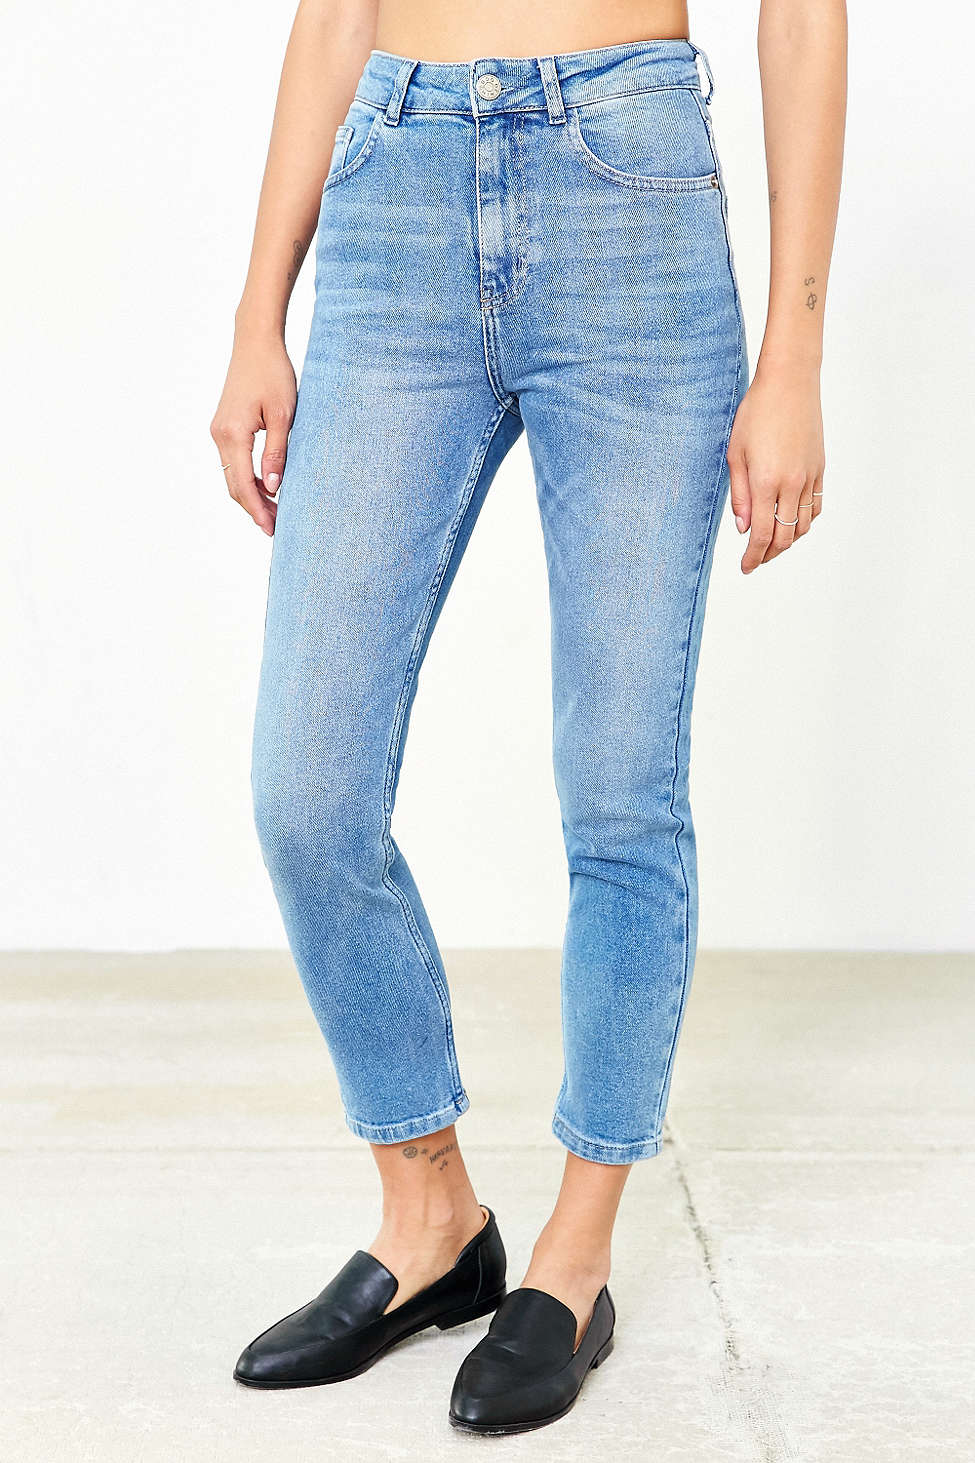 BDG Girlfriend High-Rise Jean$79